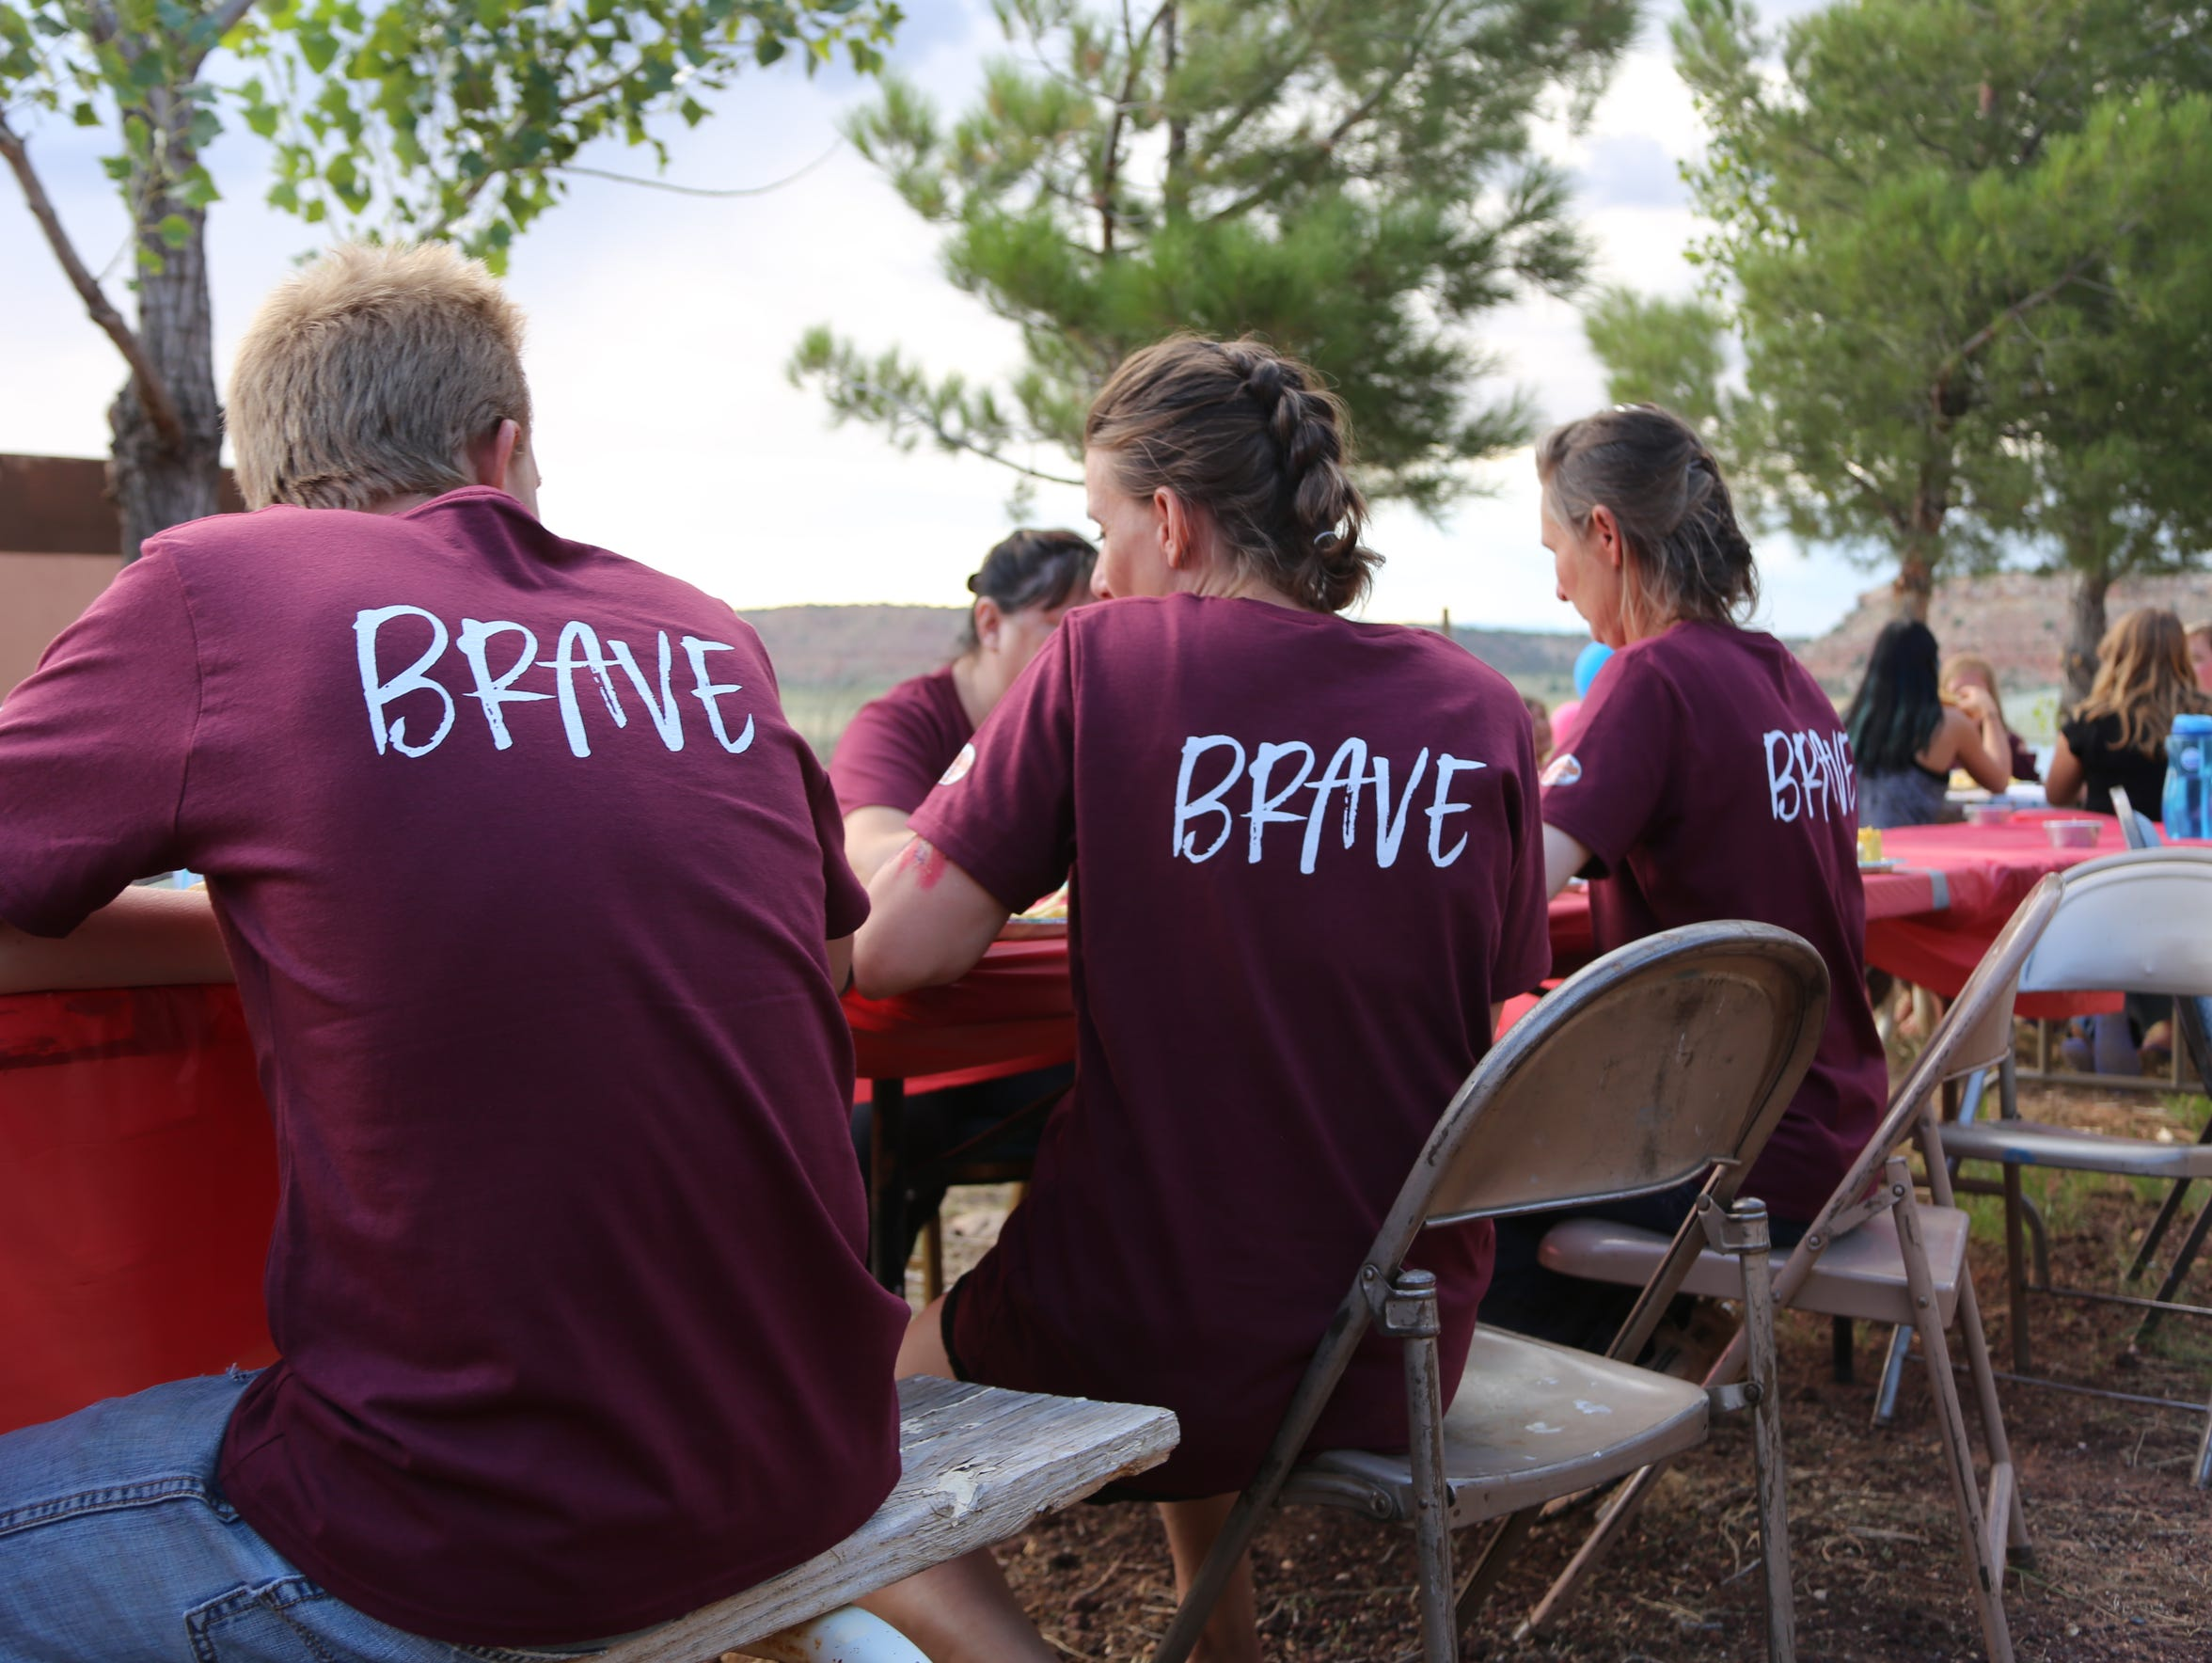 Young women attend the Brave Youth camp for former